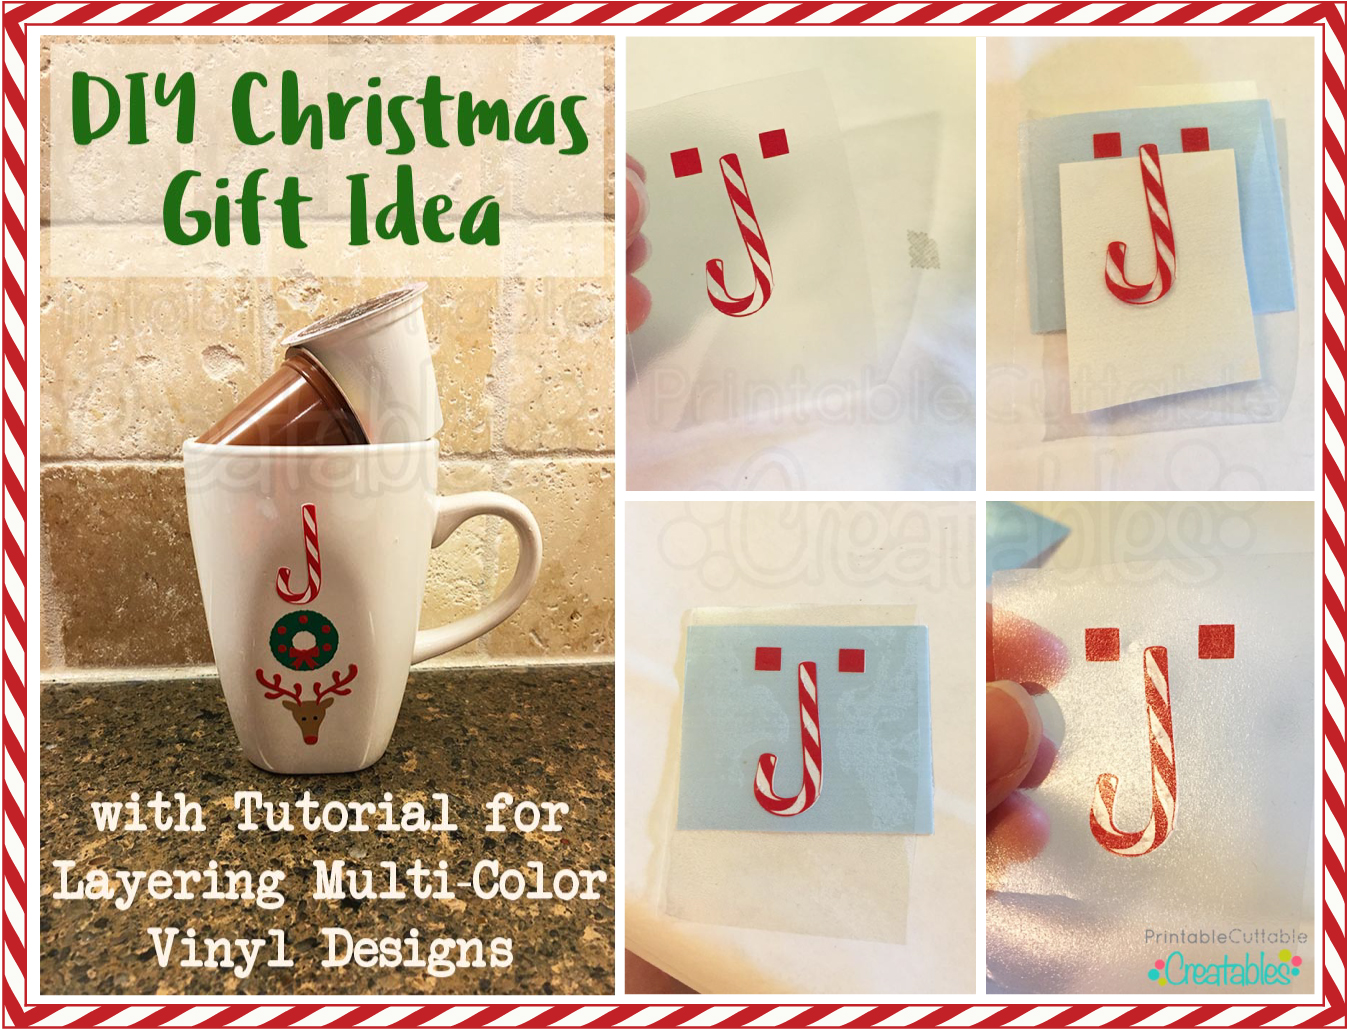 DIY Christmas Gift- How to Layer Vinyl Using Registration Marks